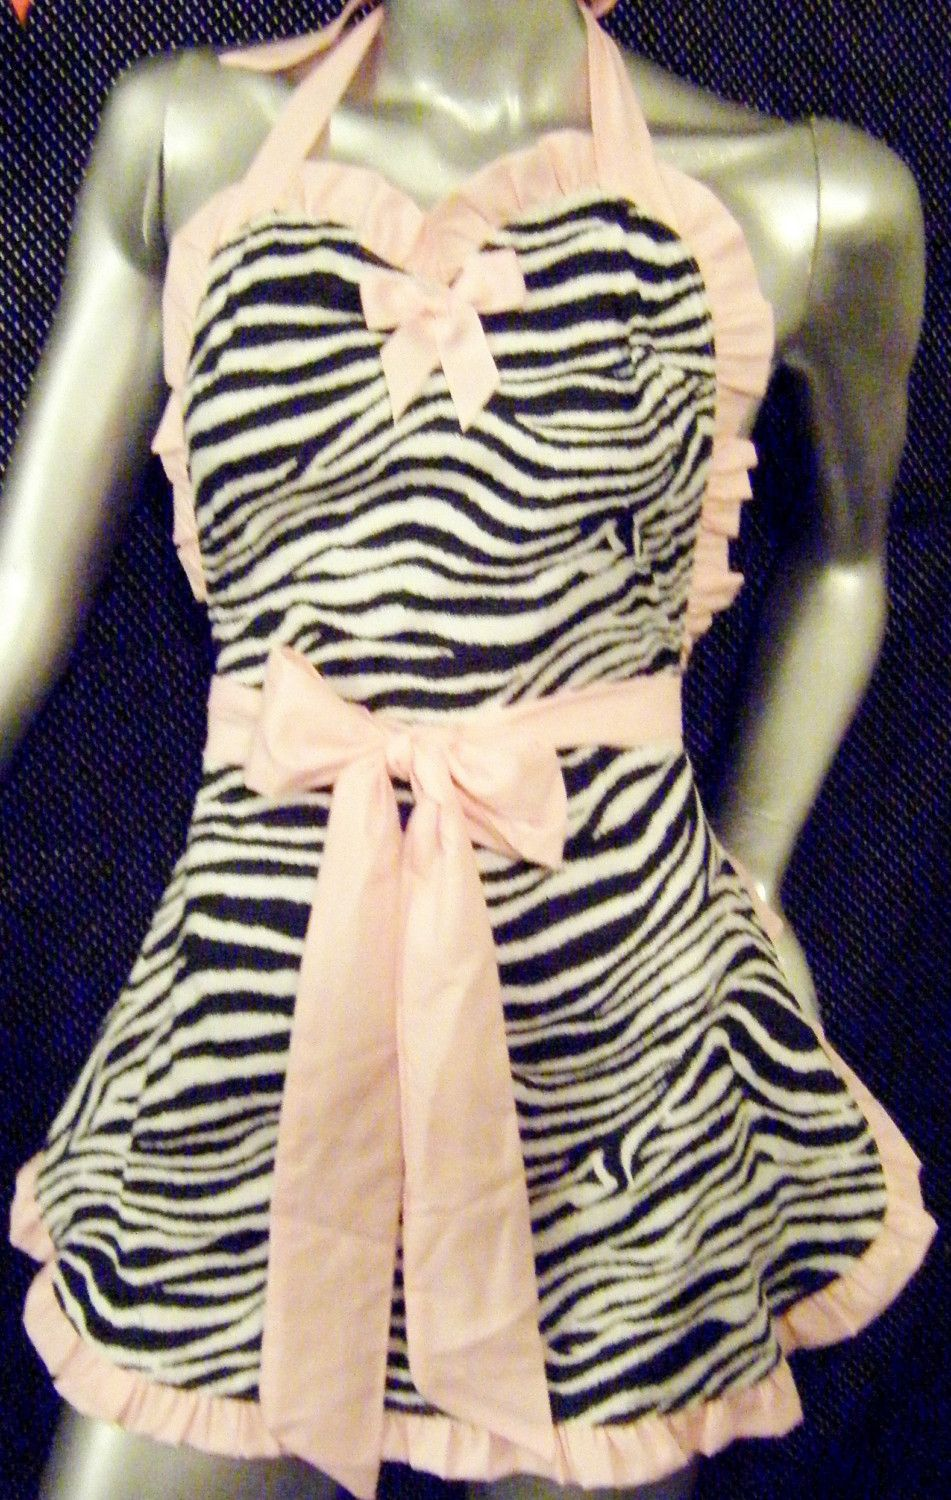 PLUS Size Apron,  ZEBRA Print,Pin-up, Retro,50's, Rockabilly, Zebra,Fits 3-XXL by UnderTheVeil on Etsy